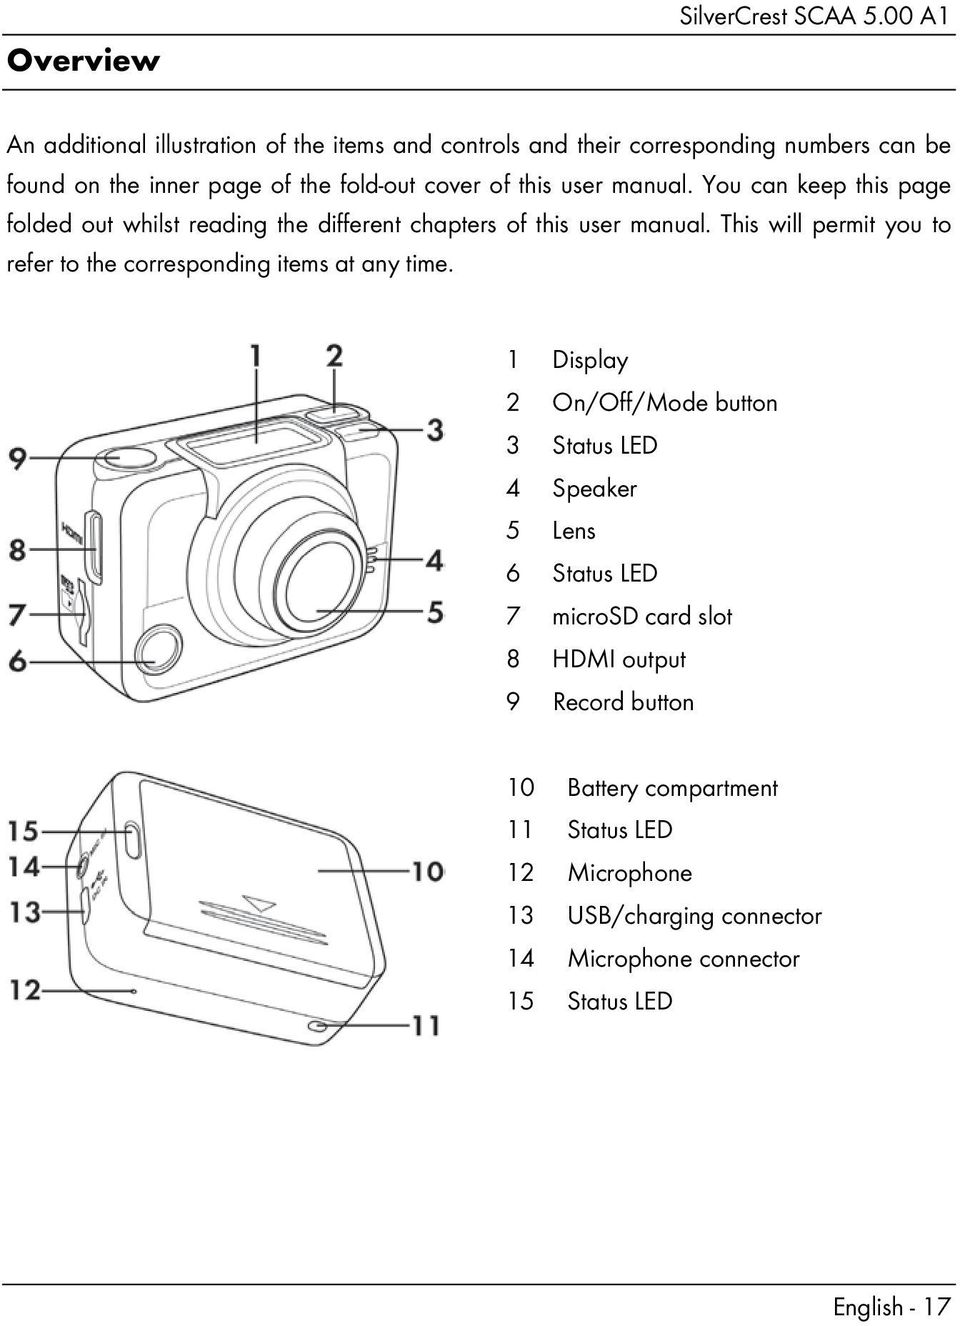 user manual. You can keep this page folded out whilst reading the different chapters of this user manual.